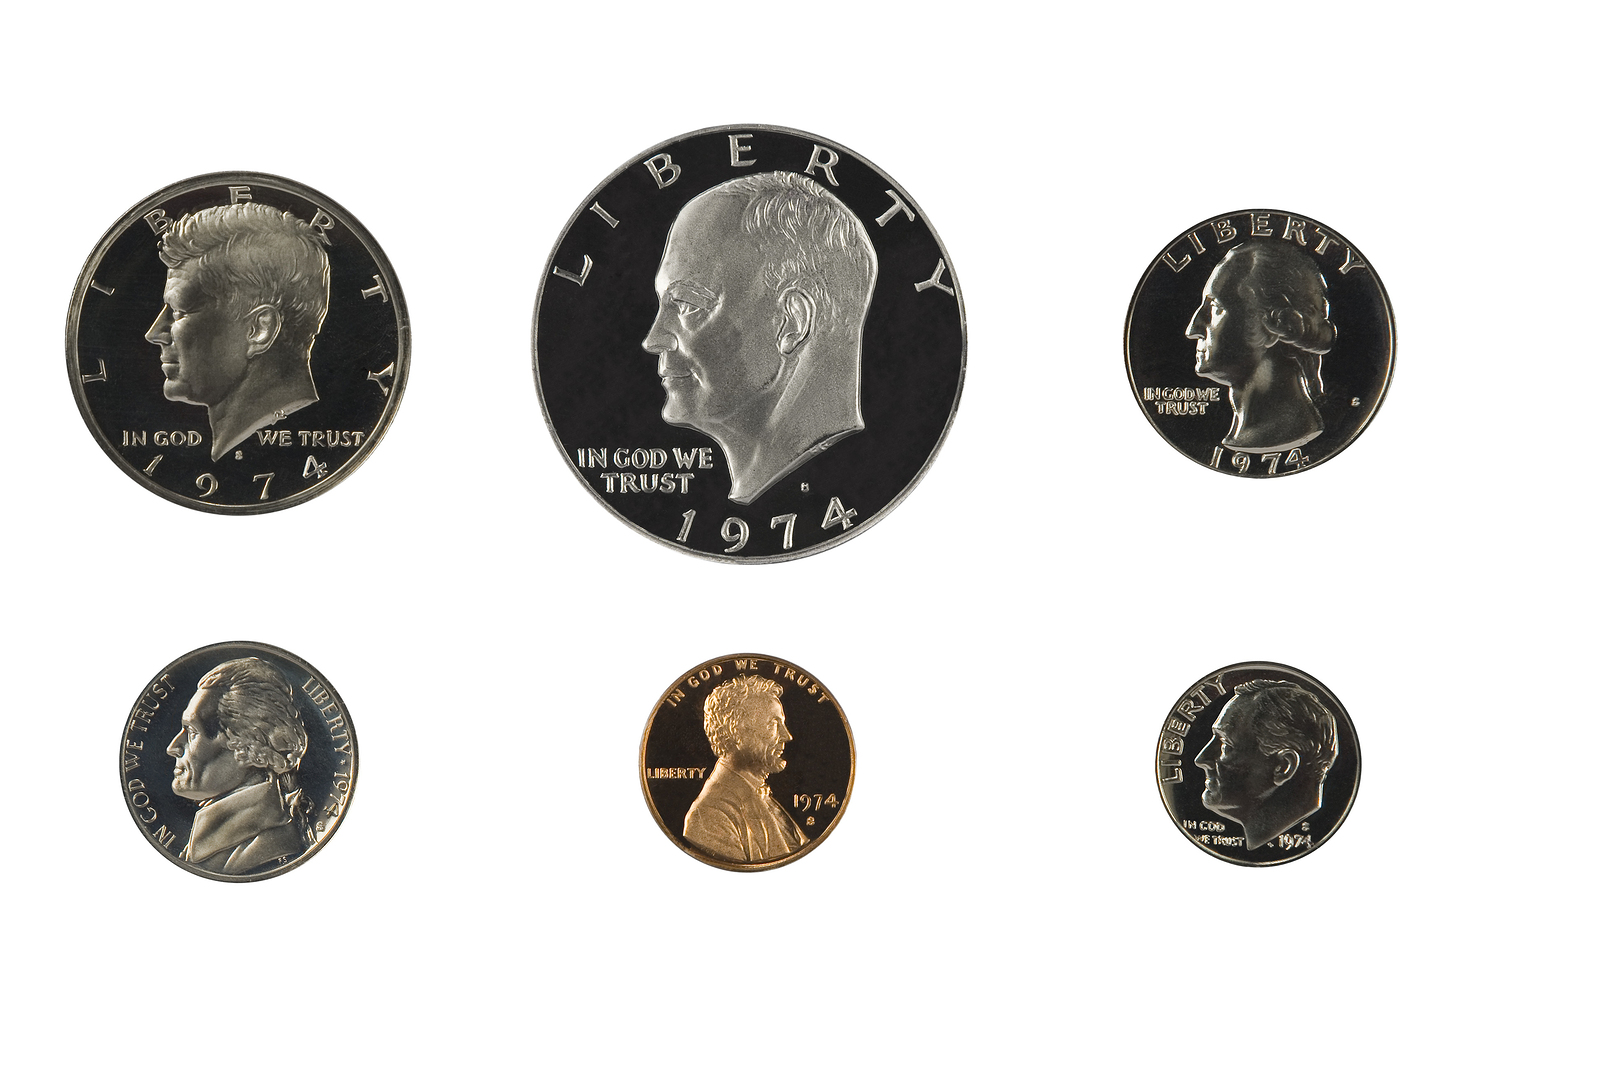 main image for Proof Sets: A Bust Buy Or Best Buy?